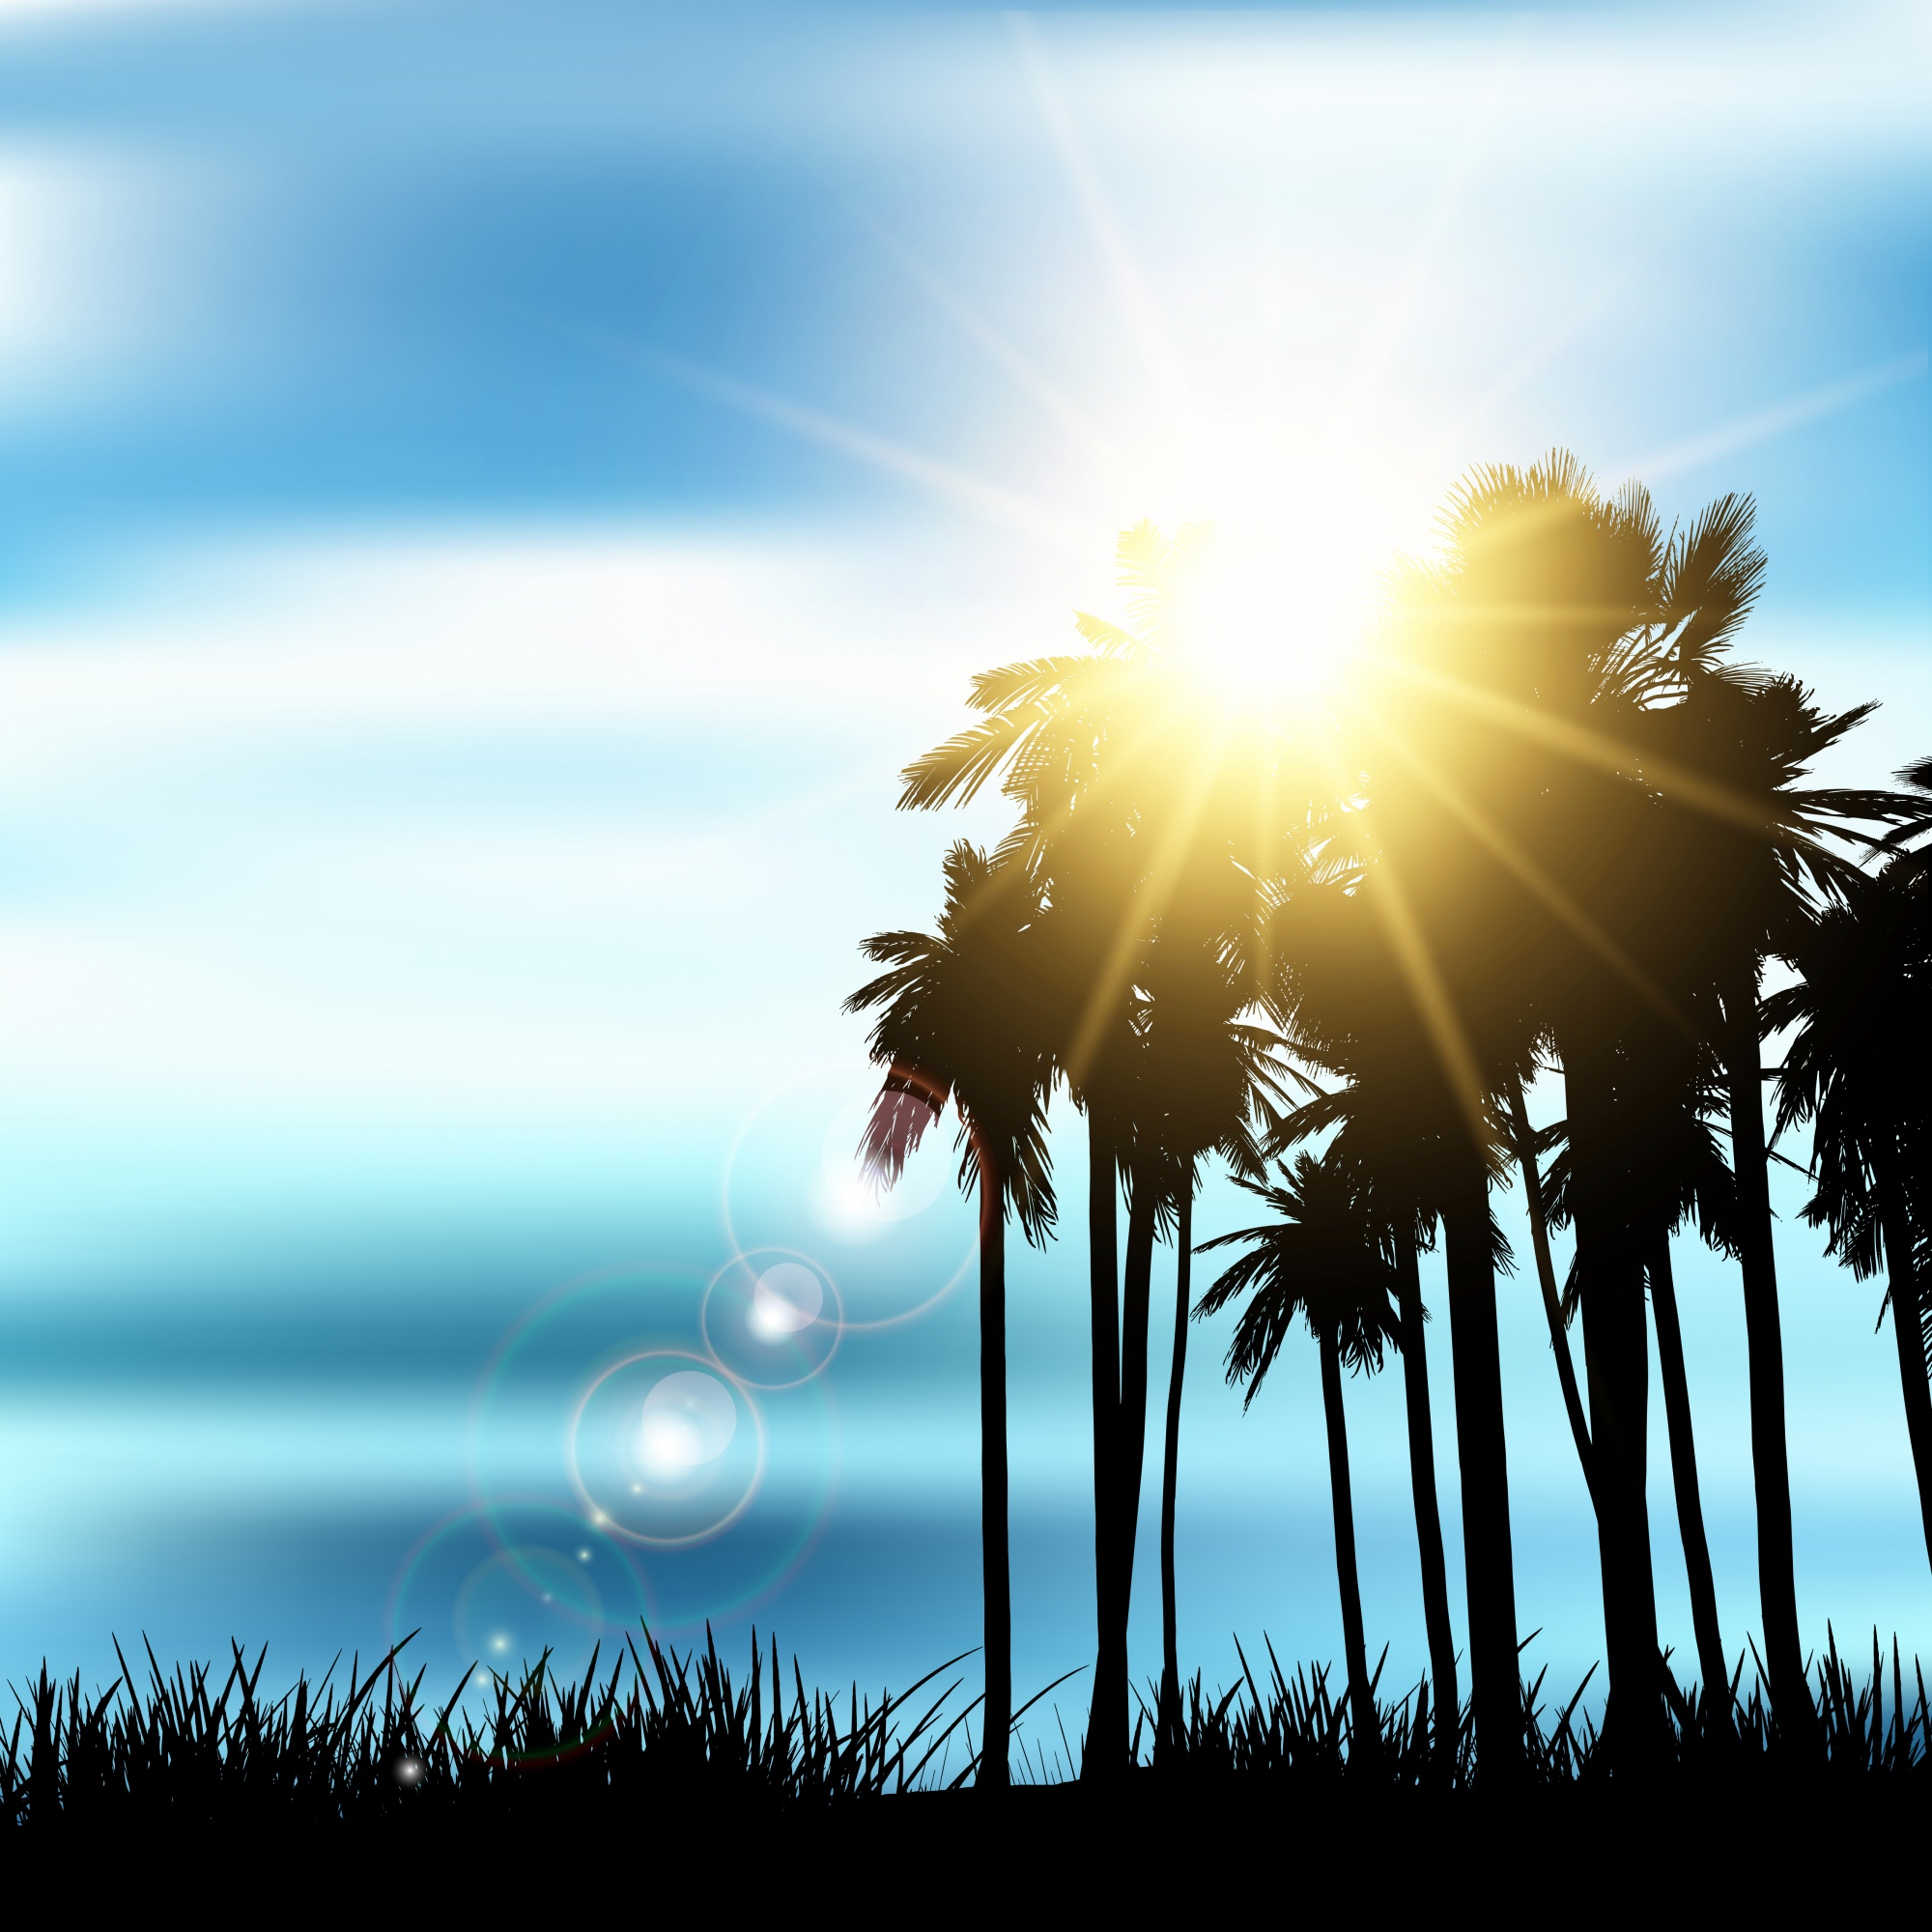 Silhouette of a palm tree landscape